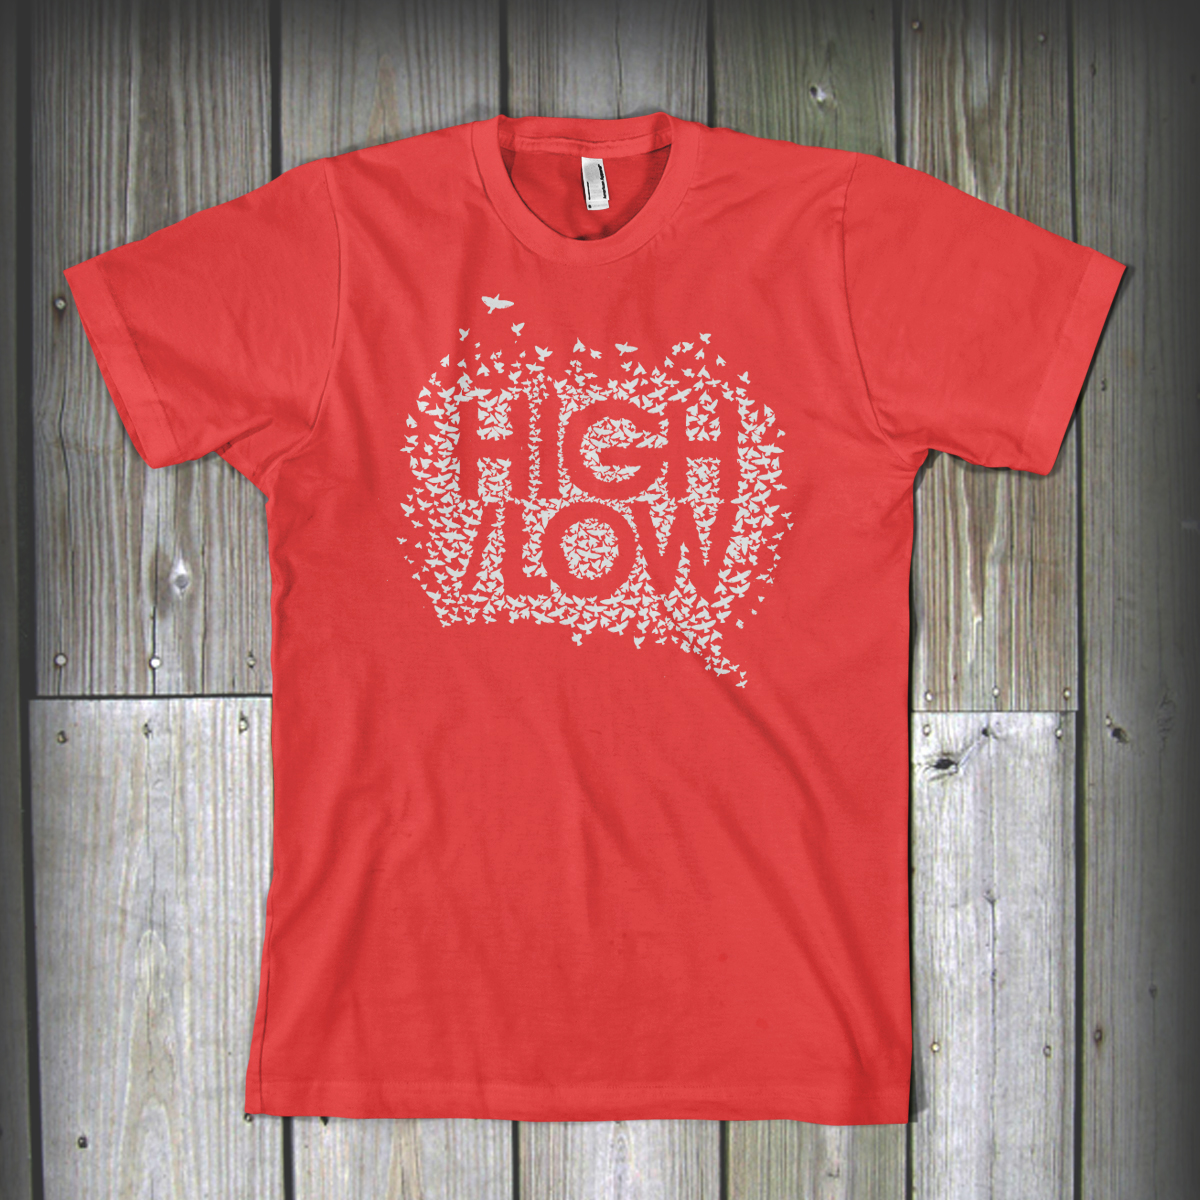 highlow-tshirt-bird-logo-red